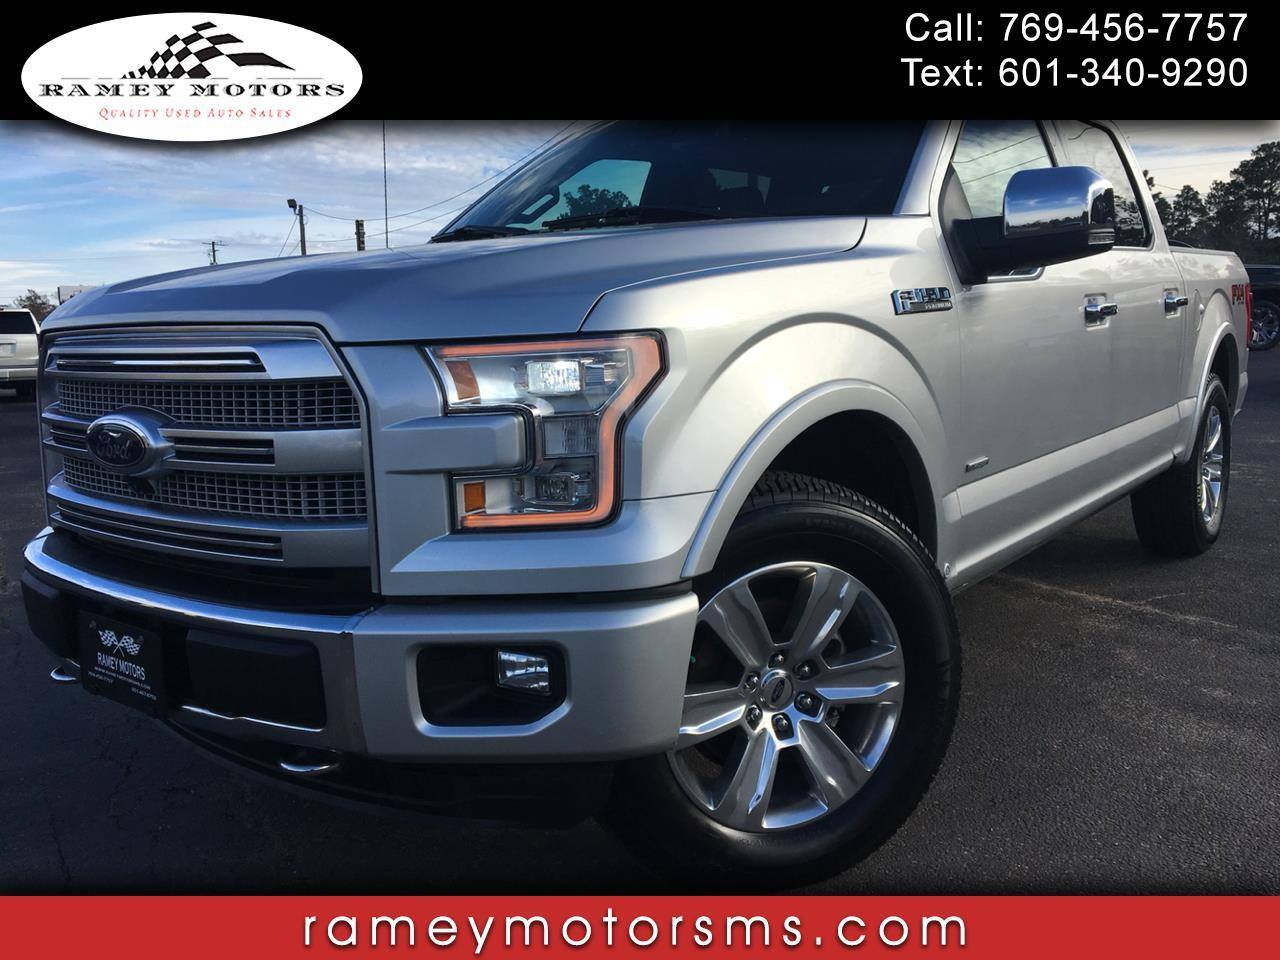 2016 Ford F-150 4WD PLATINUM